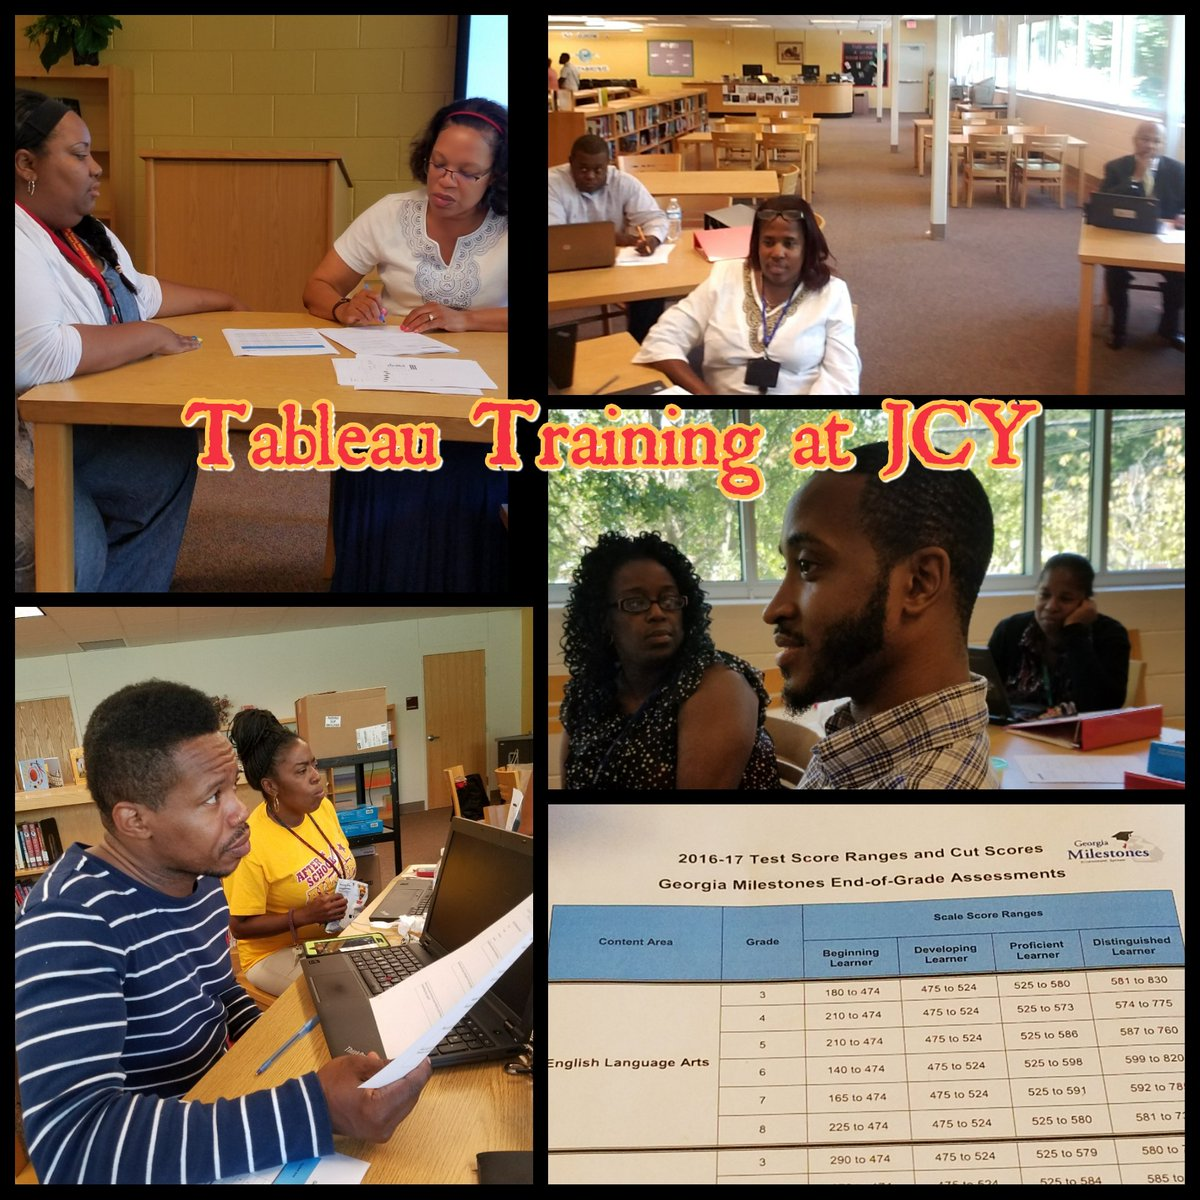 Tableau is an invaluable data tool the allows teachers to better respond to individual student needs. #informed @tableau @Atldepsupt<br>http://pic.twitter.com/AbvqYaTMx4